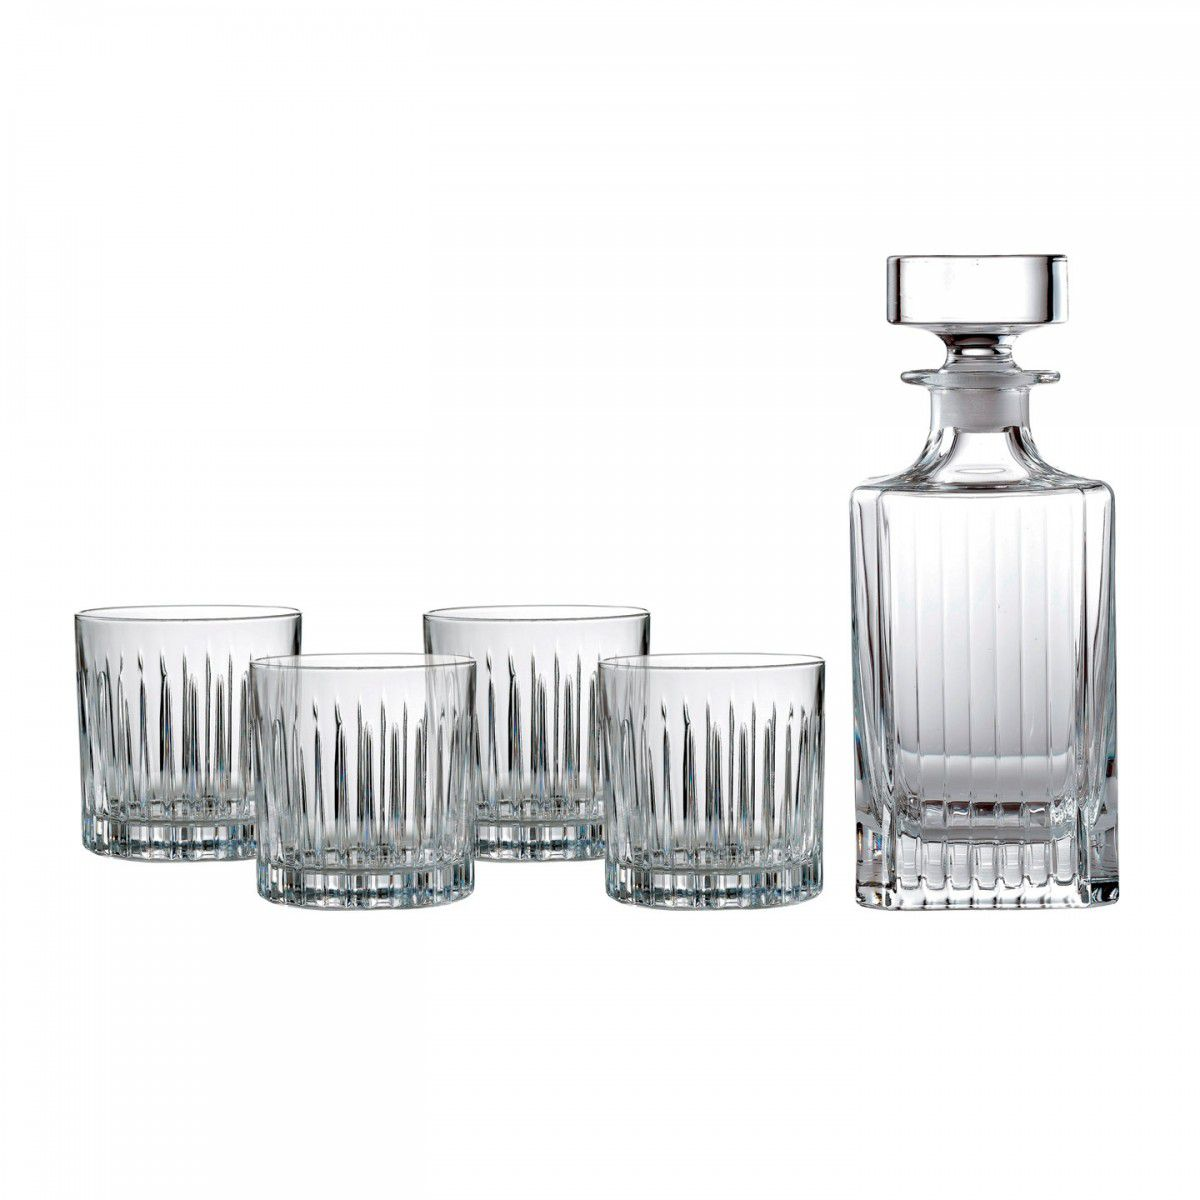 ROYAL DOULTON Set 4 pahare whisky cu carafa